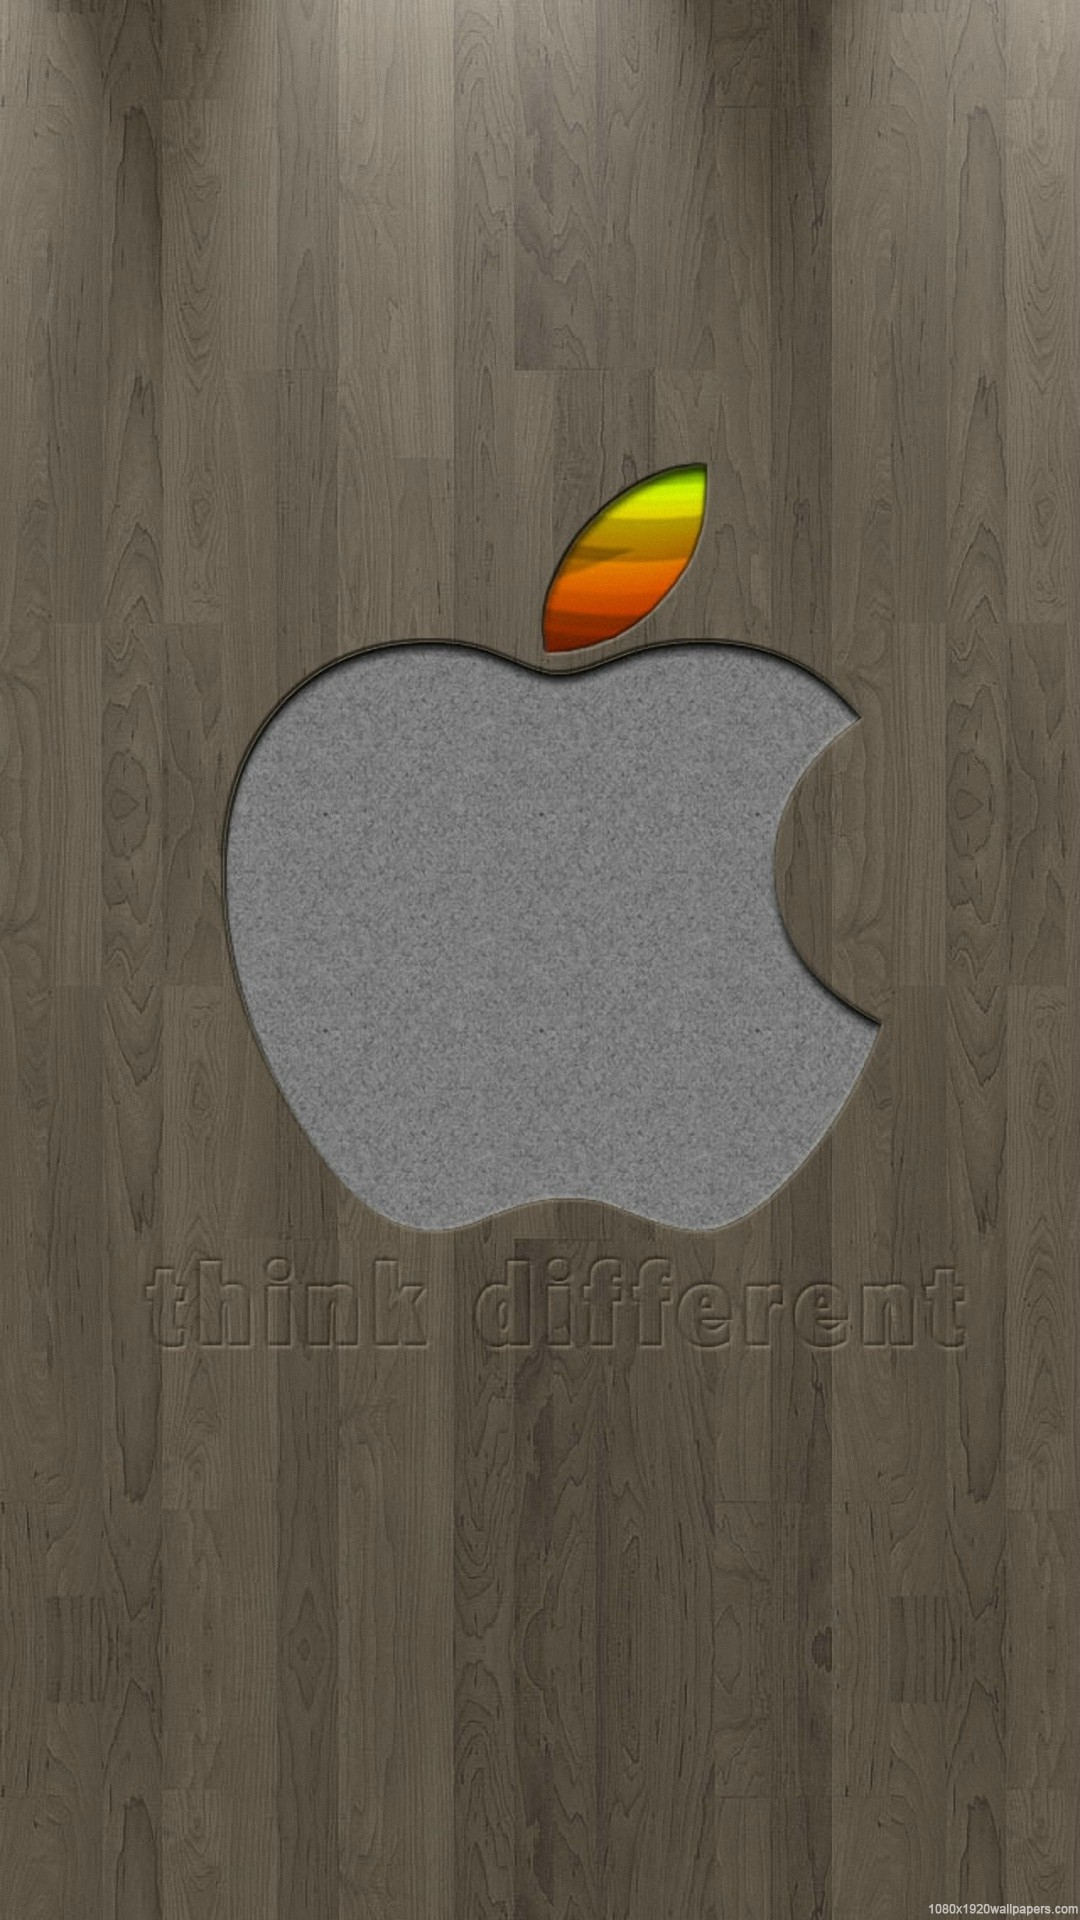 Hd Apple Logo Wallpaper For Iphone Cool Background - Apple Logo Iphone Wallpaper Apple 4k Hd - HD Wallpaper